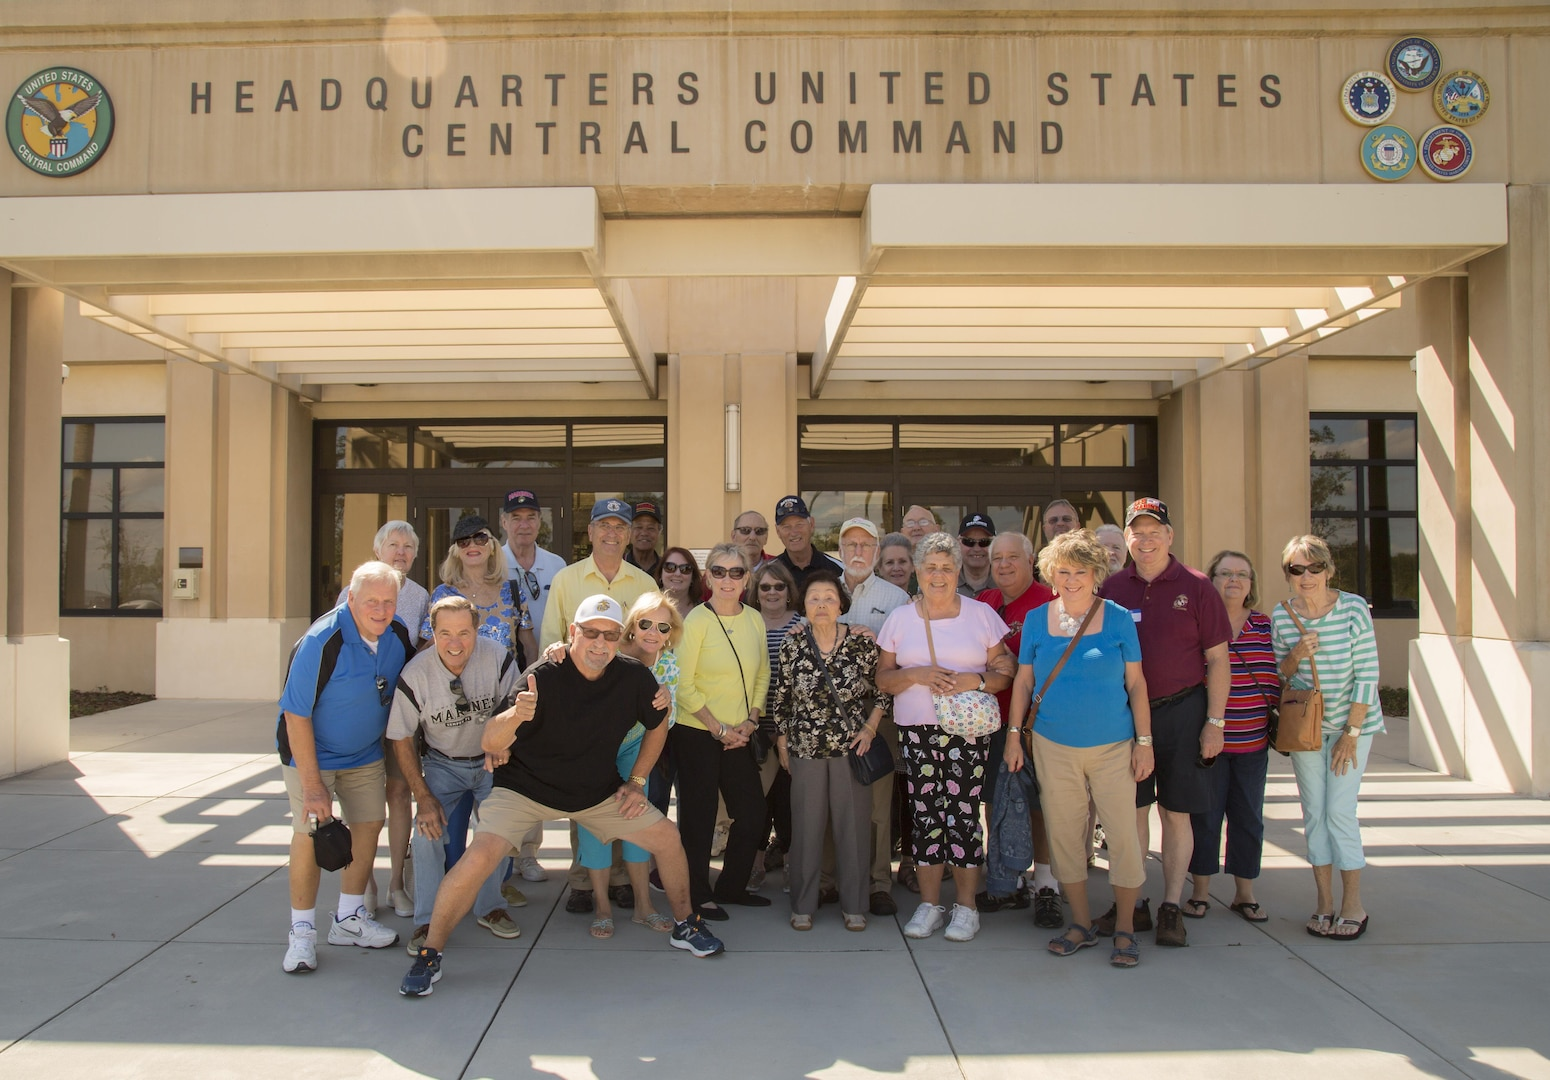 Marines of Marine Attack Squadron (VMA) 225 and spouses pose for a photo following a tour at U.S. Central Command headquarters, November 3, 2017. (Department of Defense photo by Tom Gagnier)